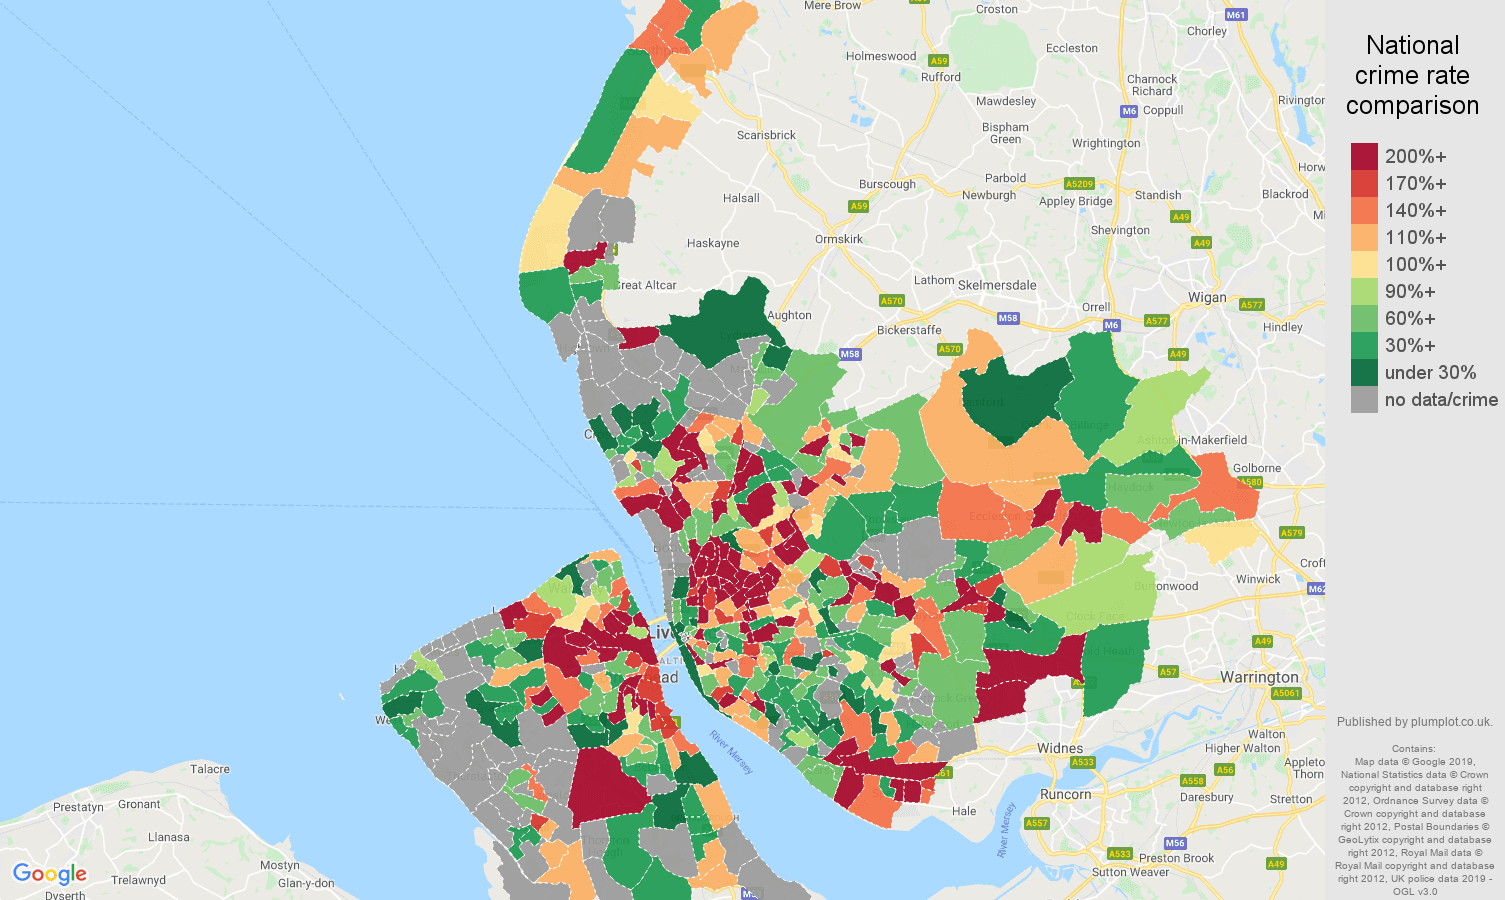 Merseyside other crime rate comparison map